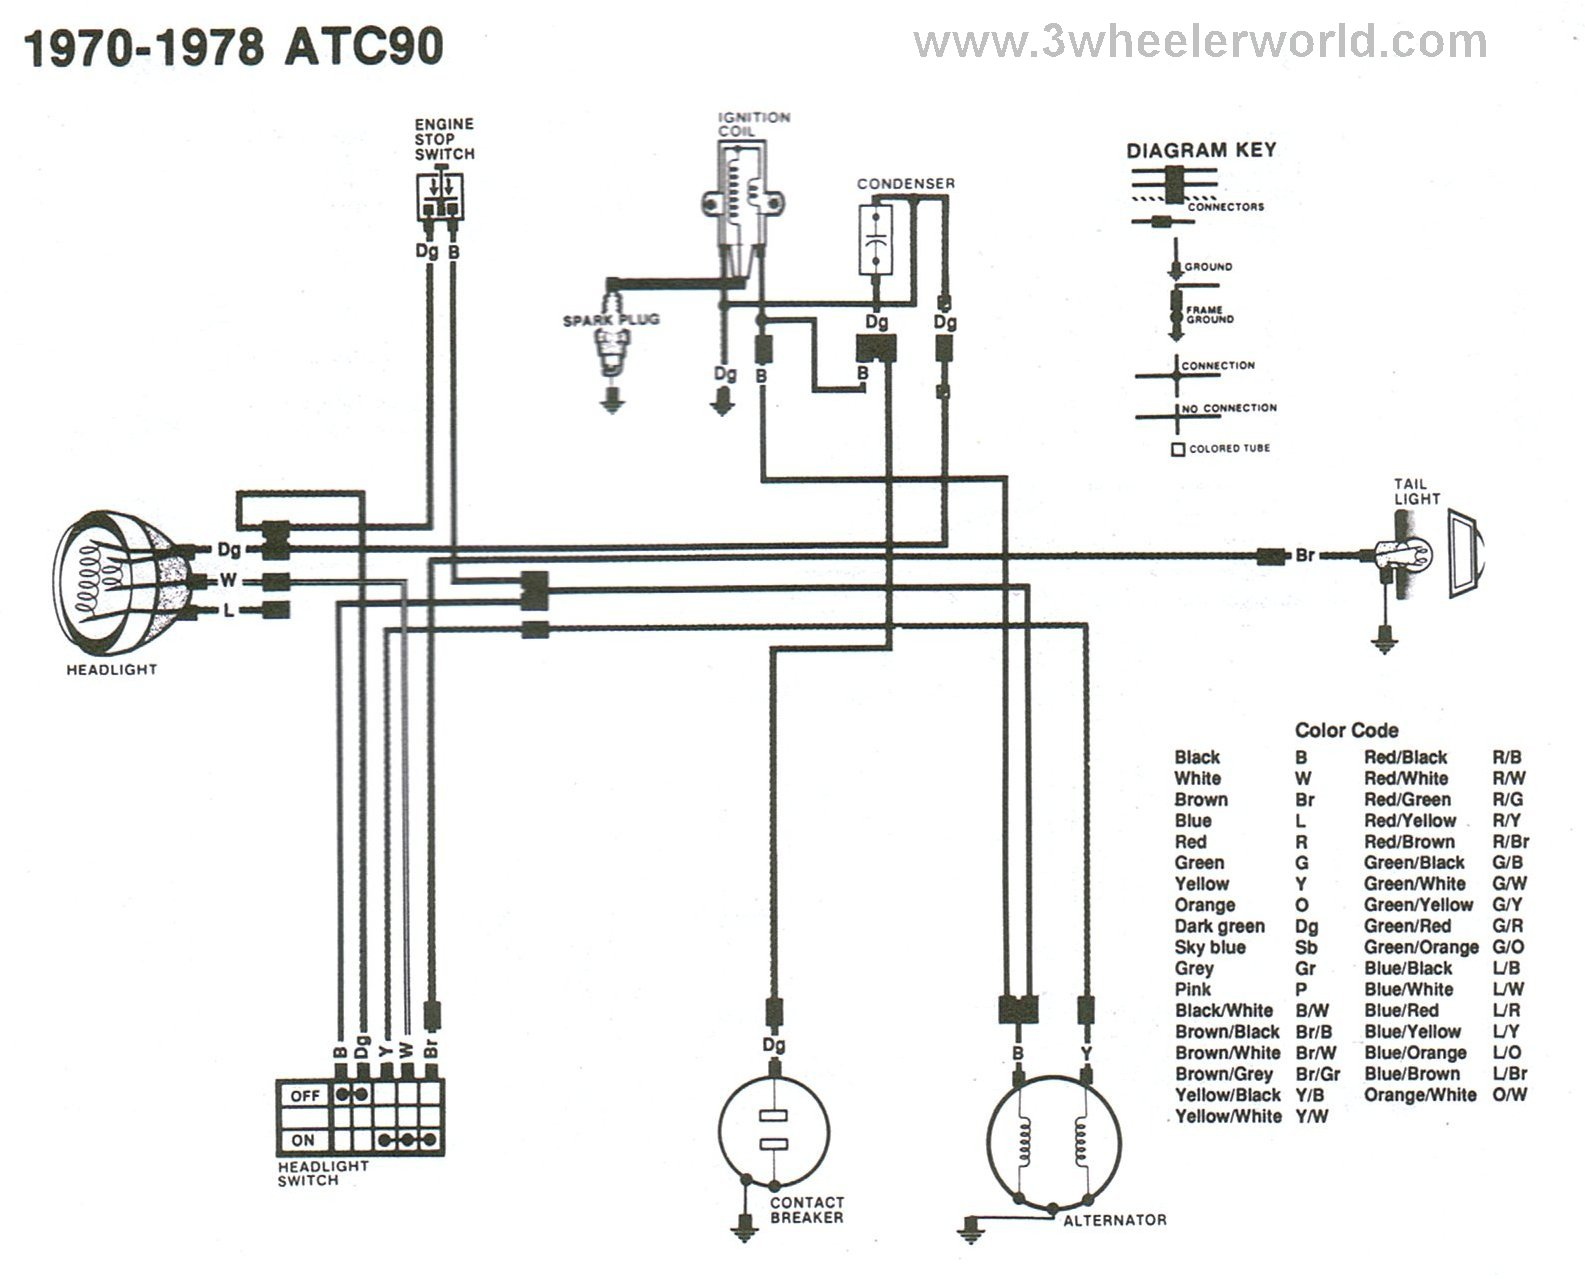 ATC90x70Thru78 3 wheeler world tech help honda wiring diagrams bajaj three wheeler wiring diagram pdf at crackthecode.co